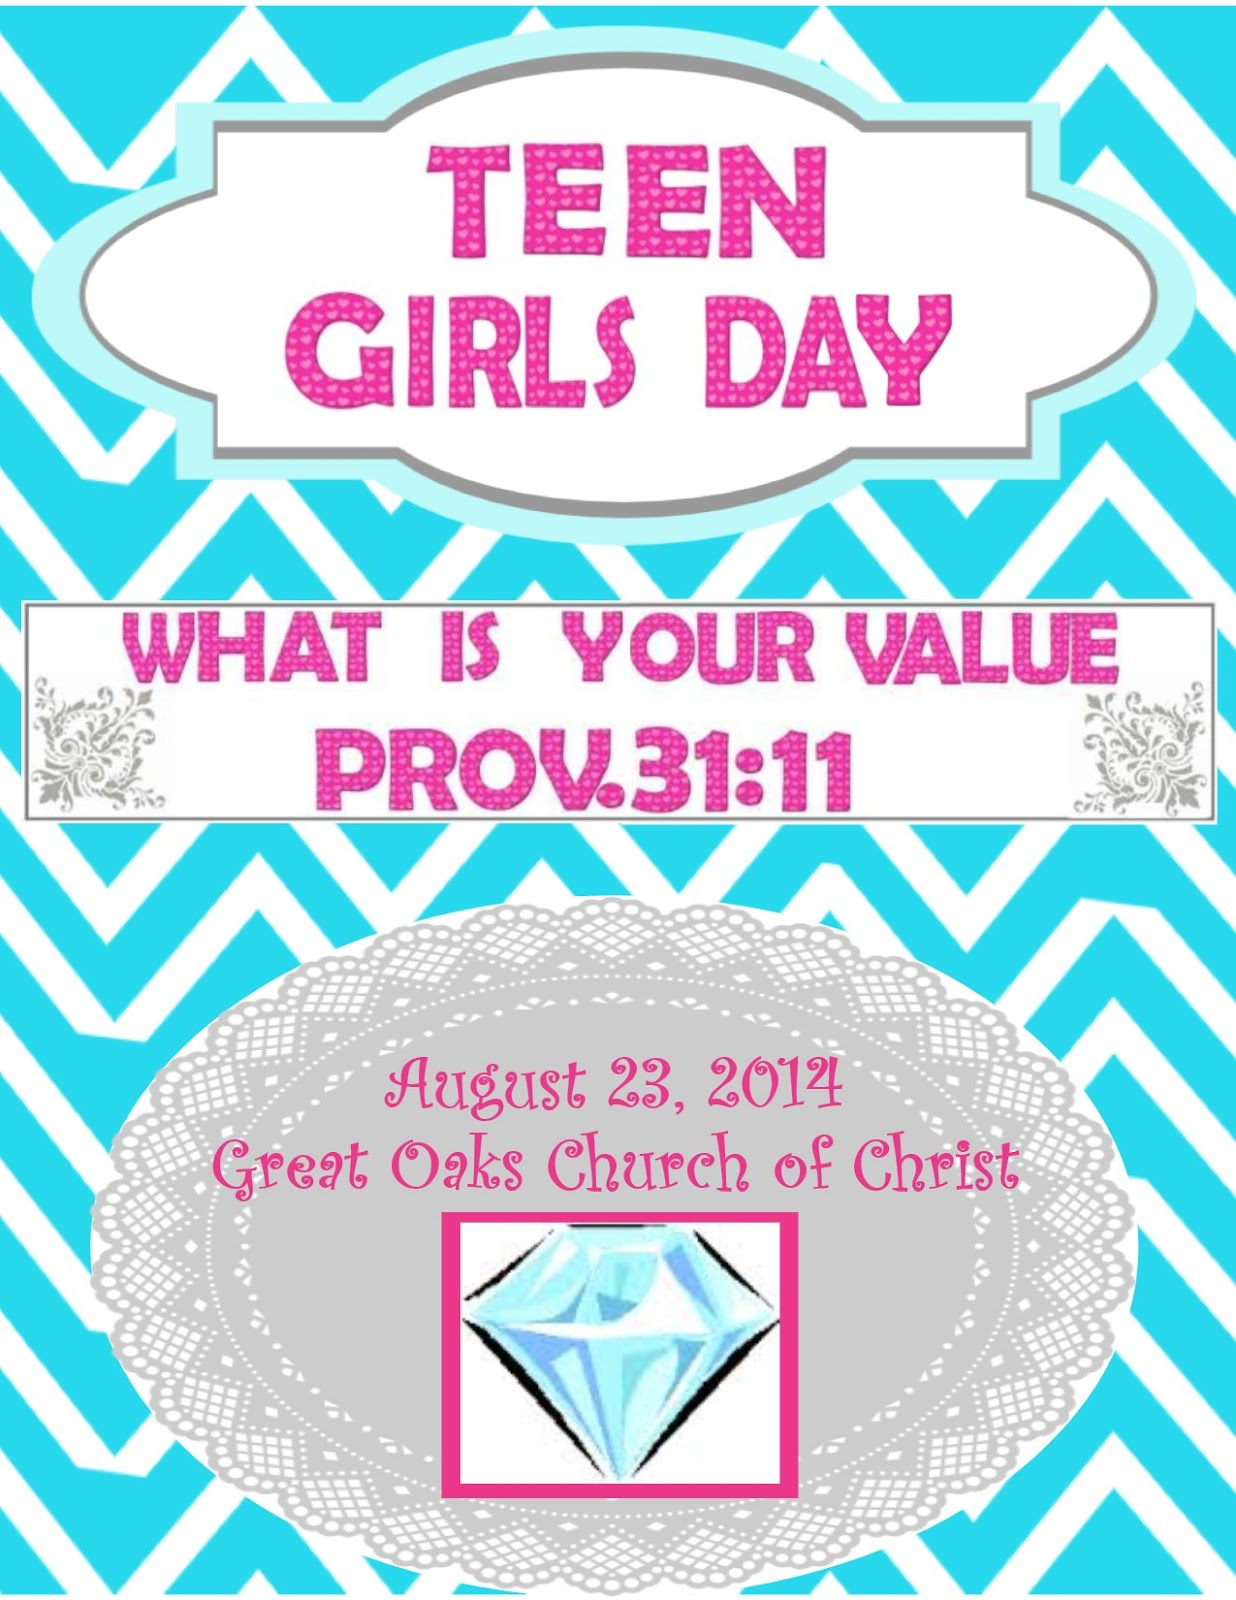 http://kidsbibledebjackson.blogspot.com/2014/08/teen-tuesday-teen-girls-day-part-1.html